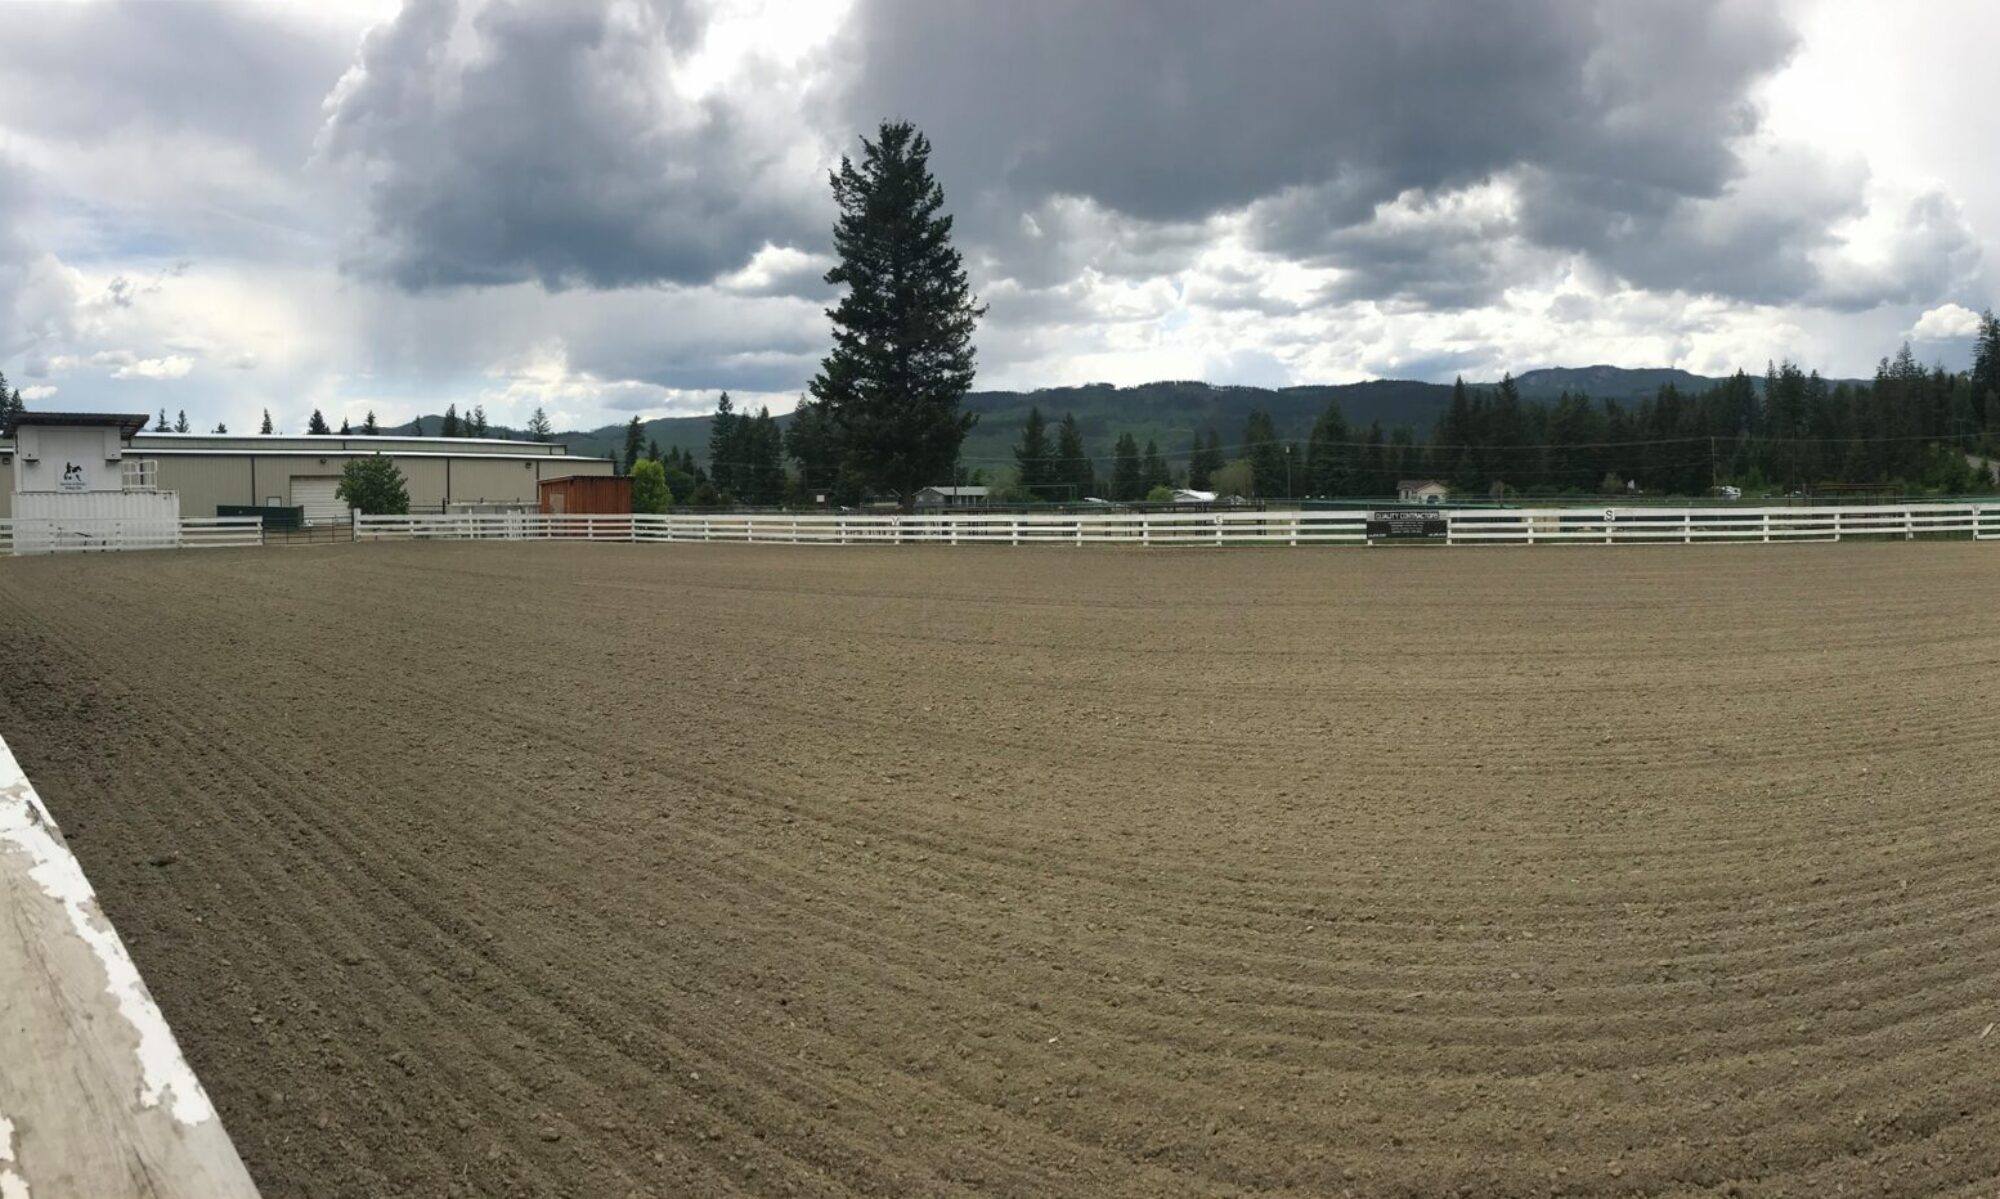 Barriere & District Riding Club